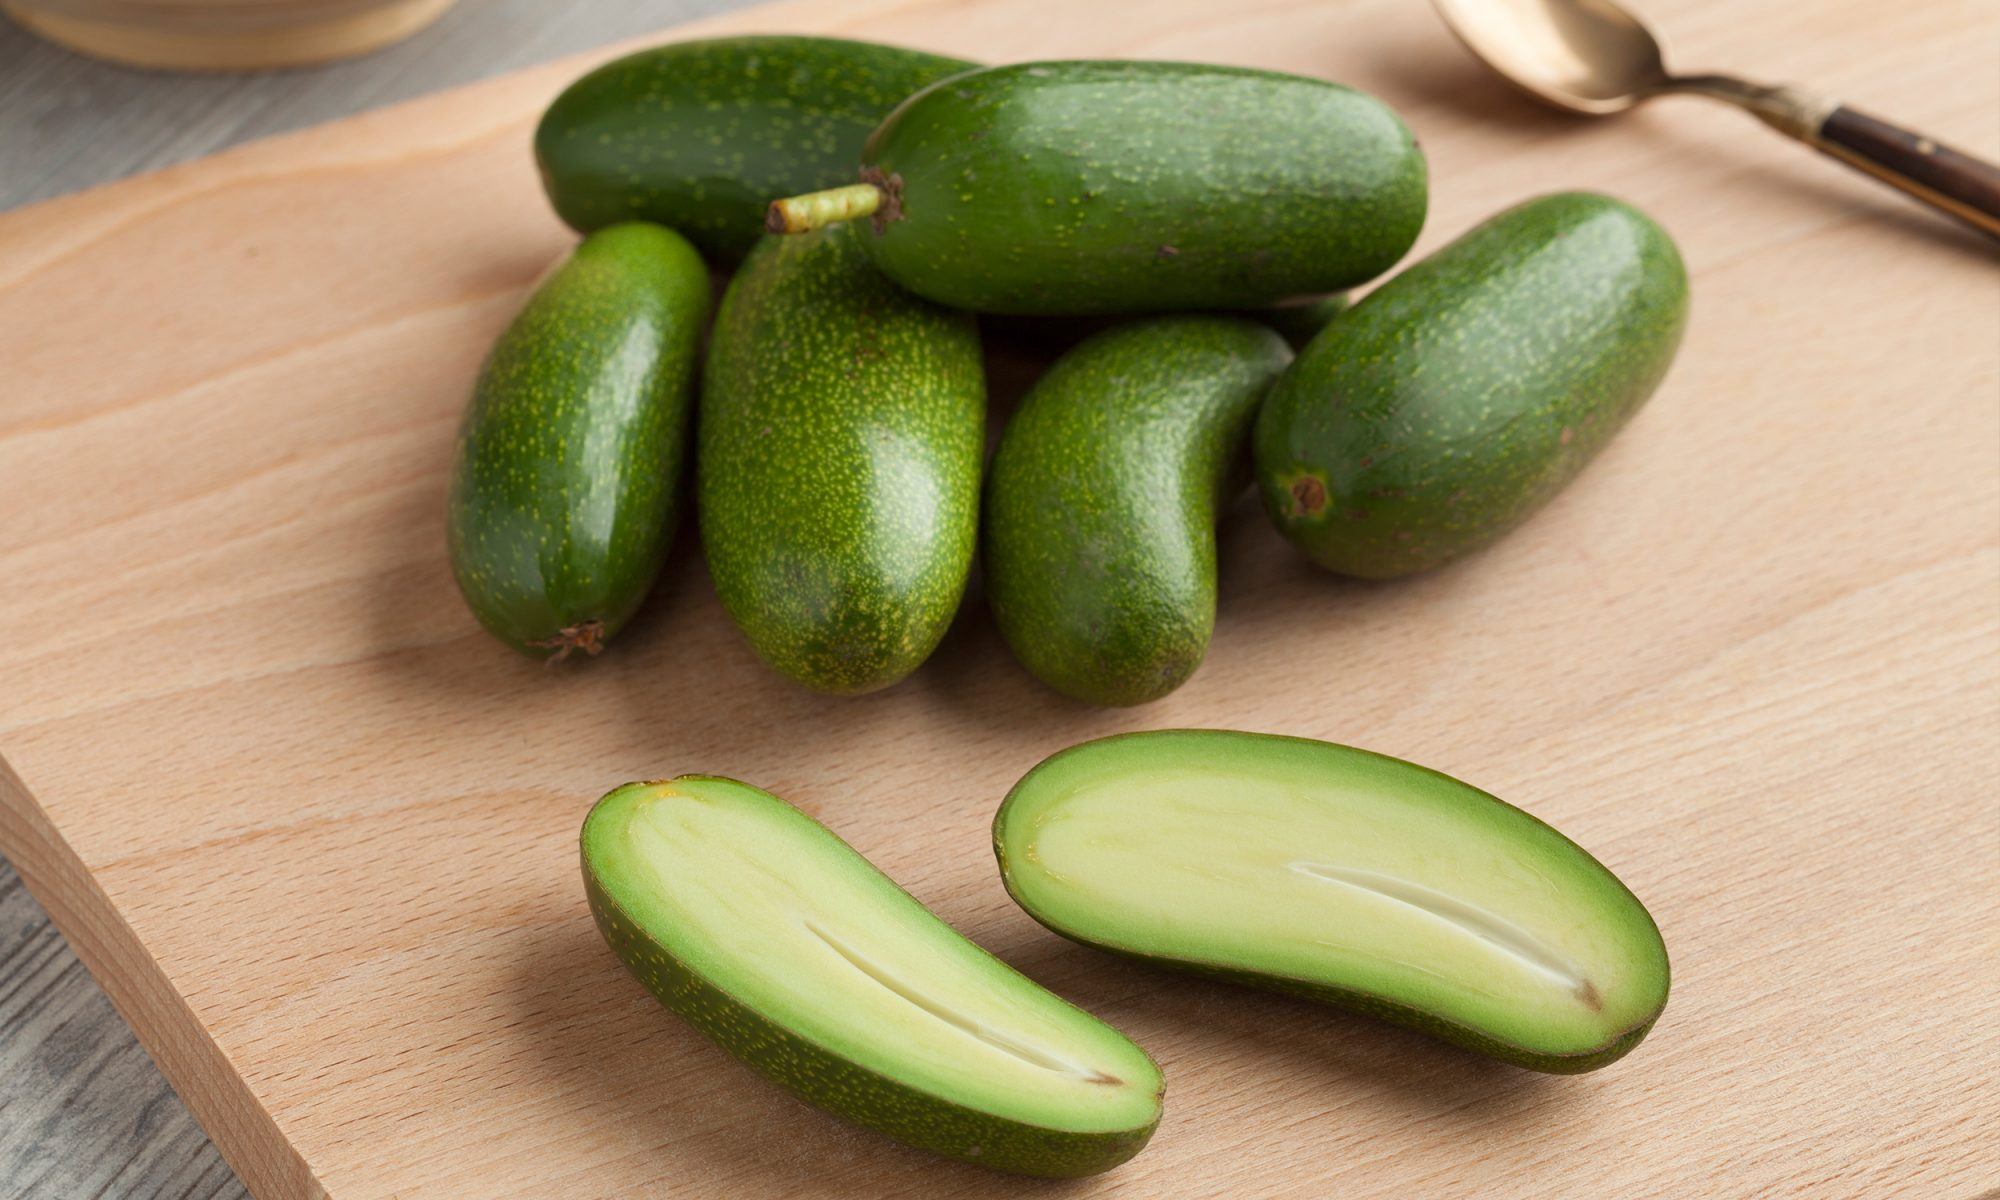 EC: A UK Grocery Chain Is Selling a Pitless Avocado